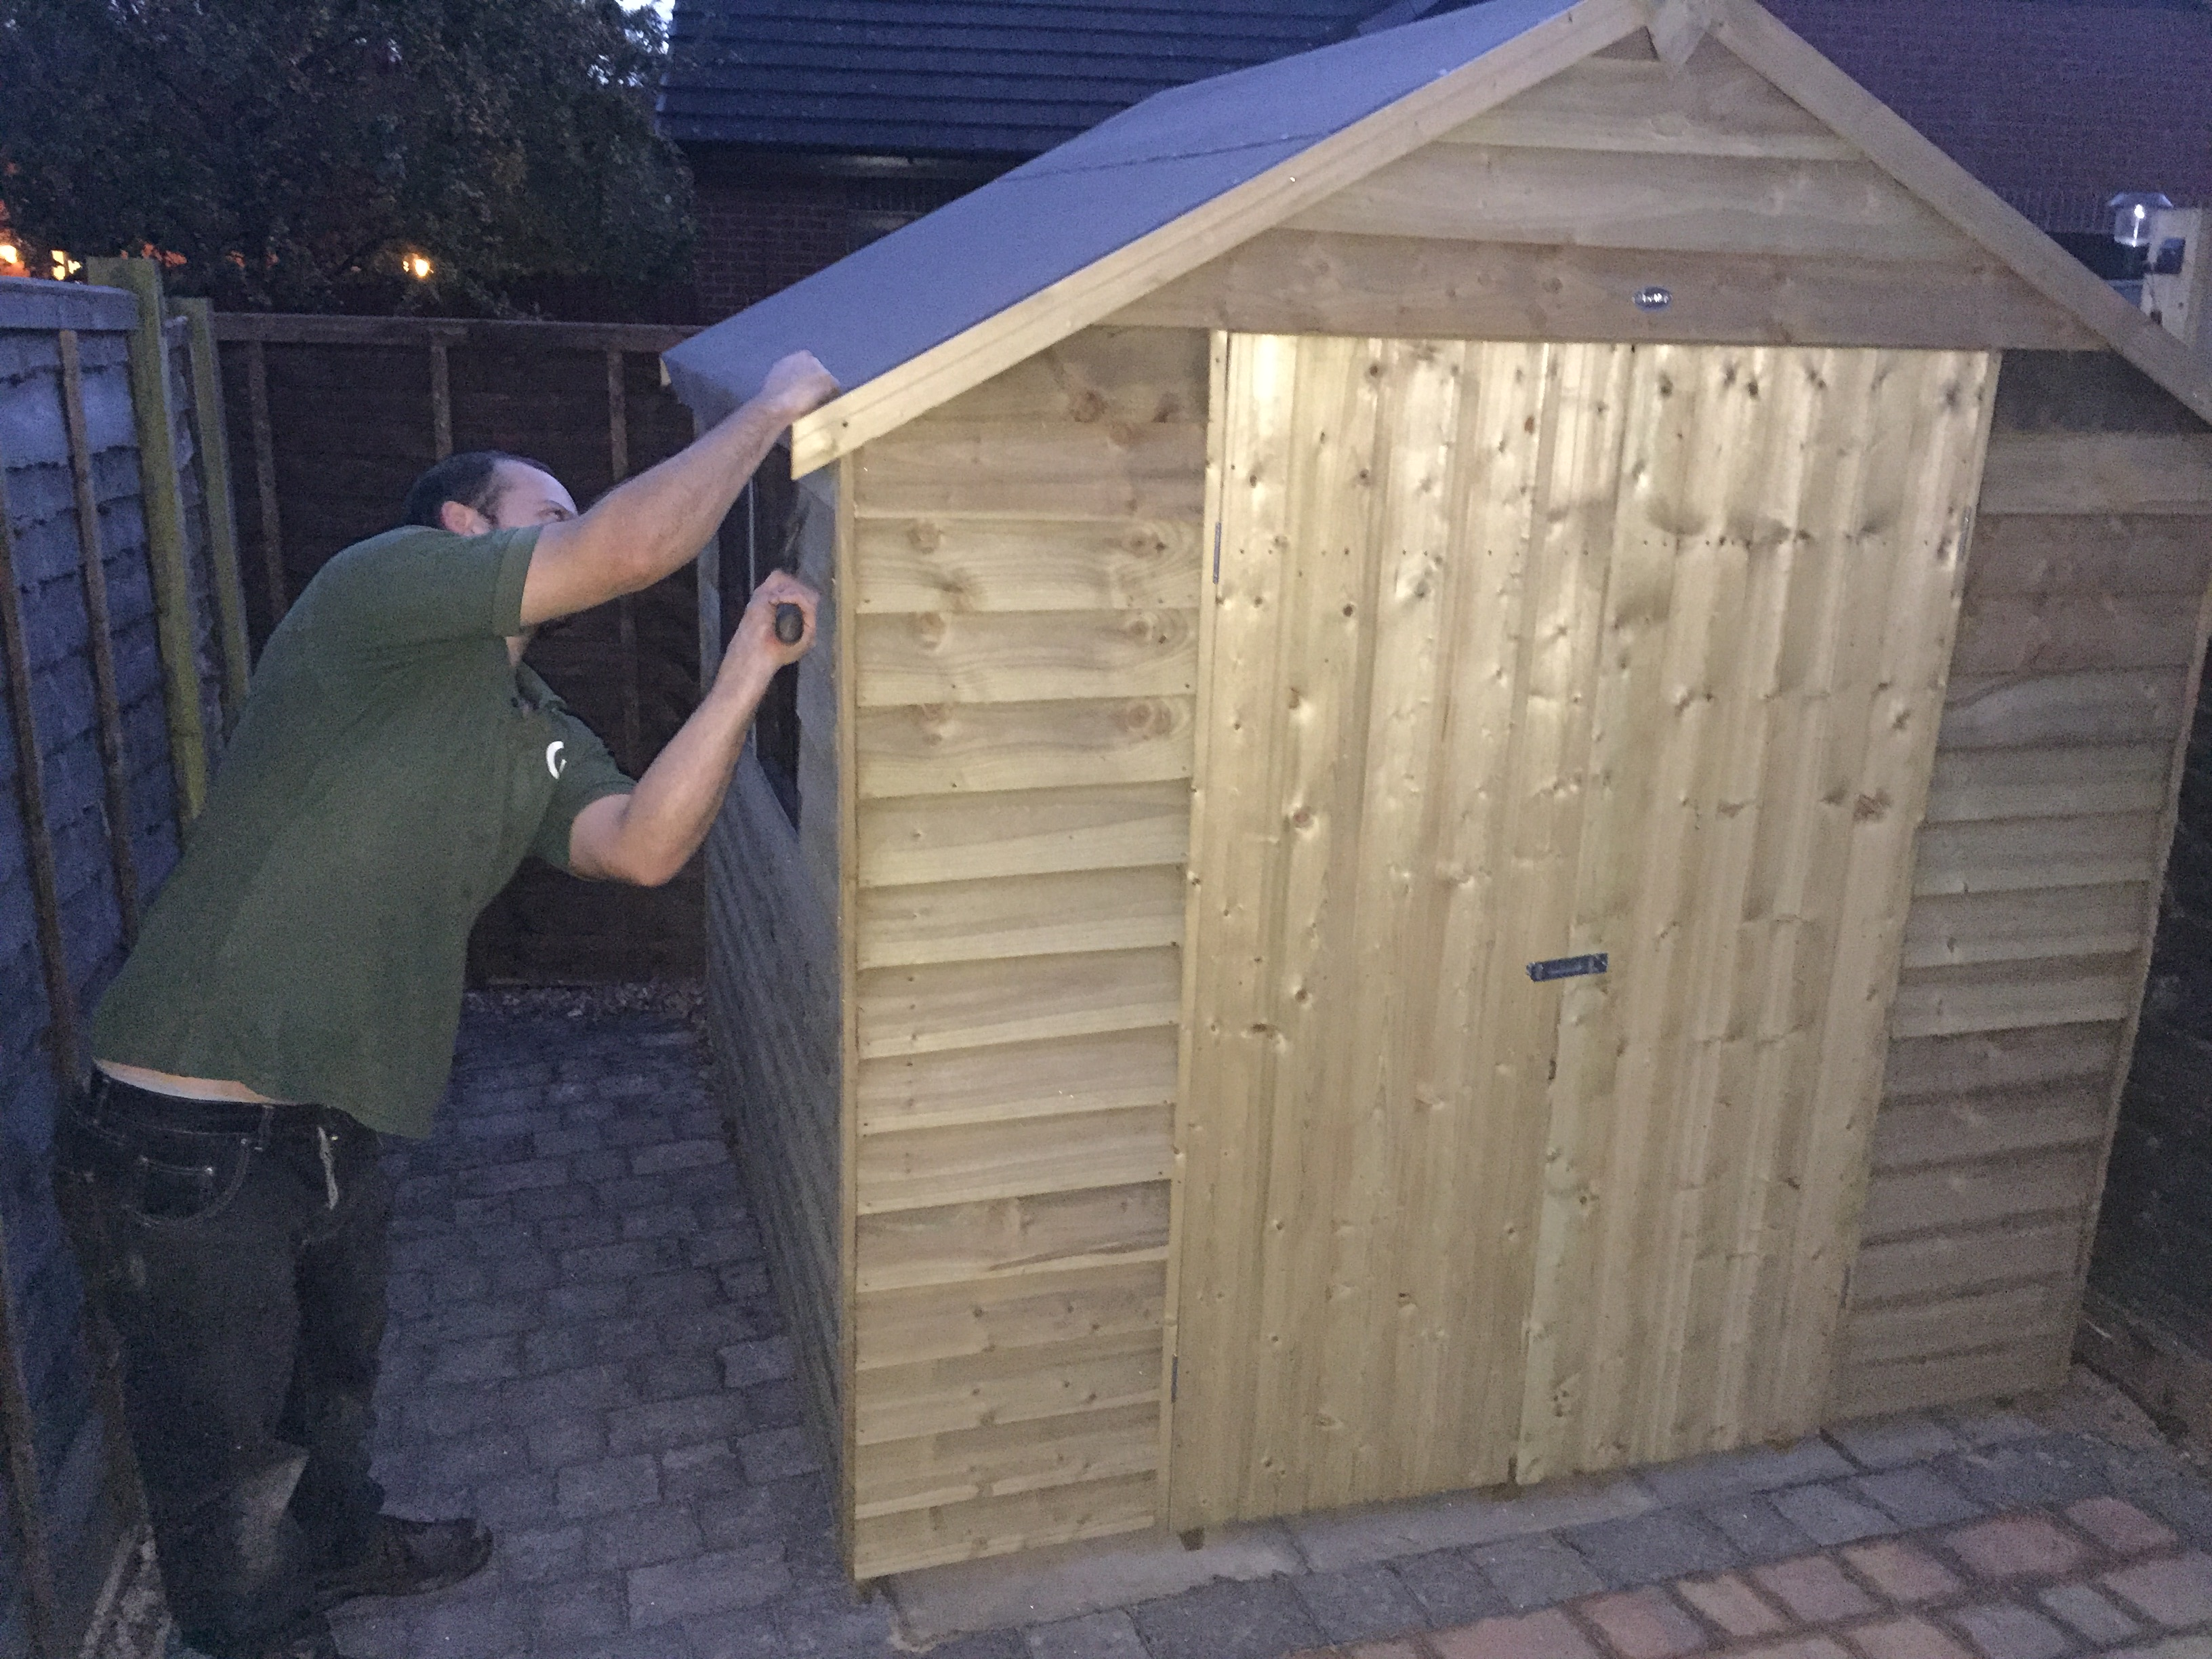 Finishing touches to shed build